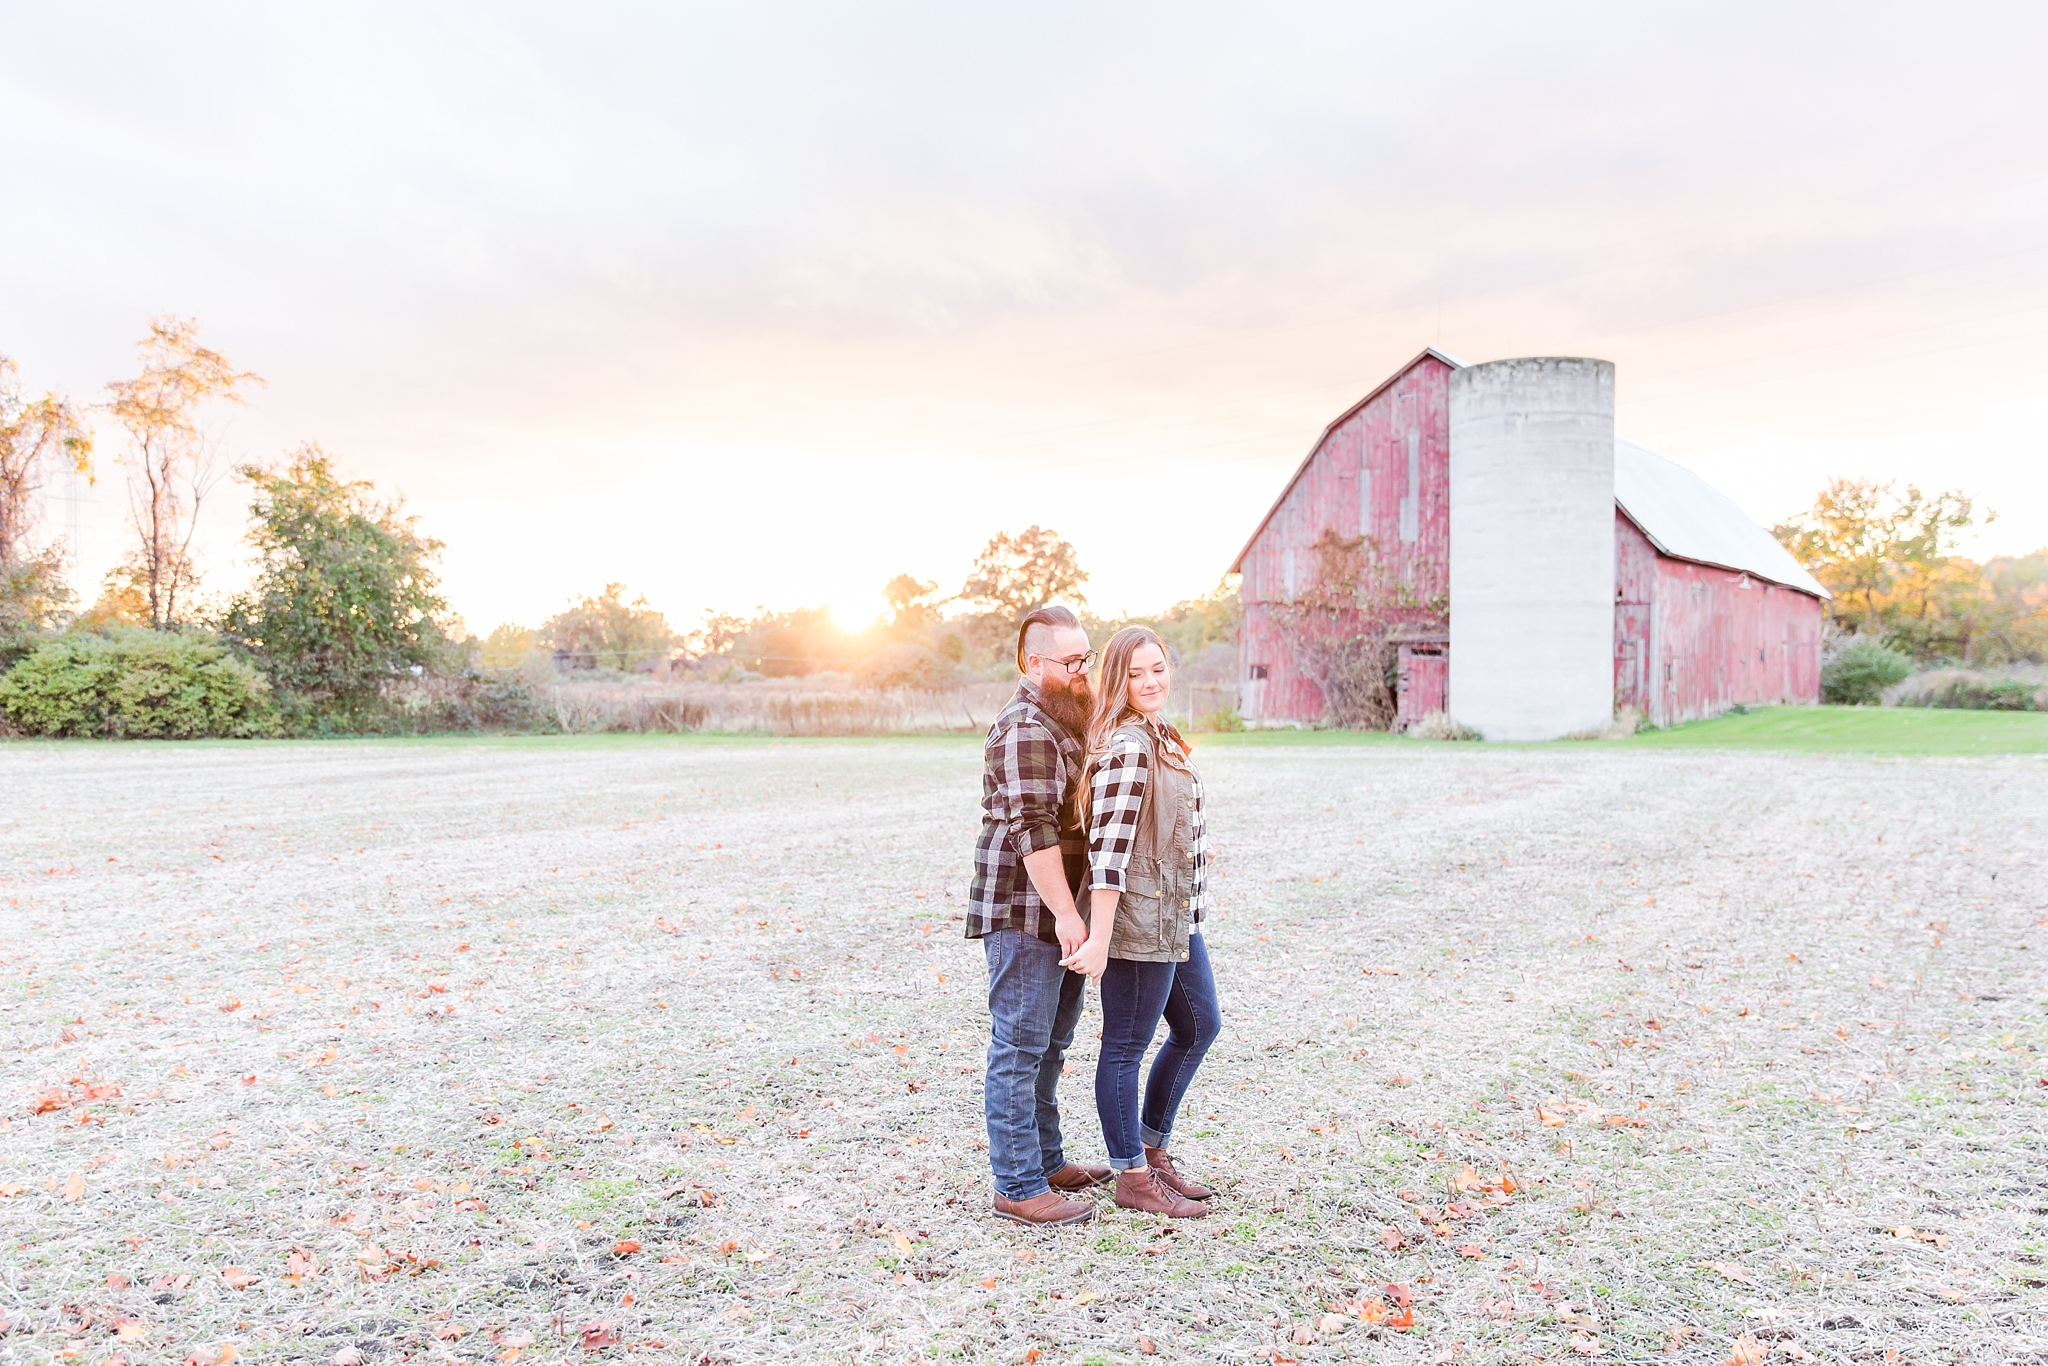 cozy-fall-engagement-photos-at-an-old-family-farm-in-monroe-michigan-by-courtney-carolyn-photography_0027.jpg